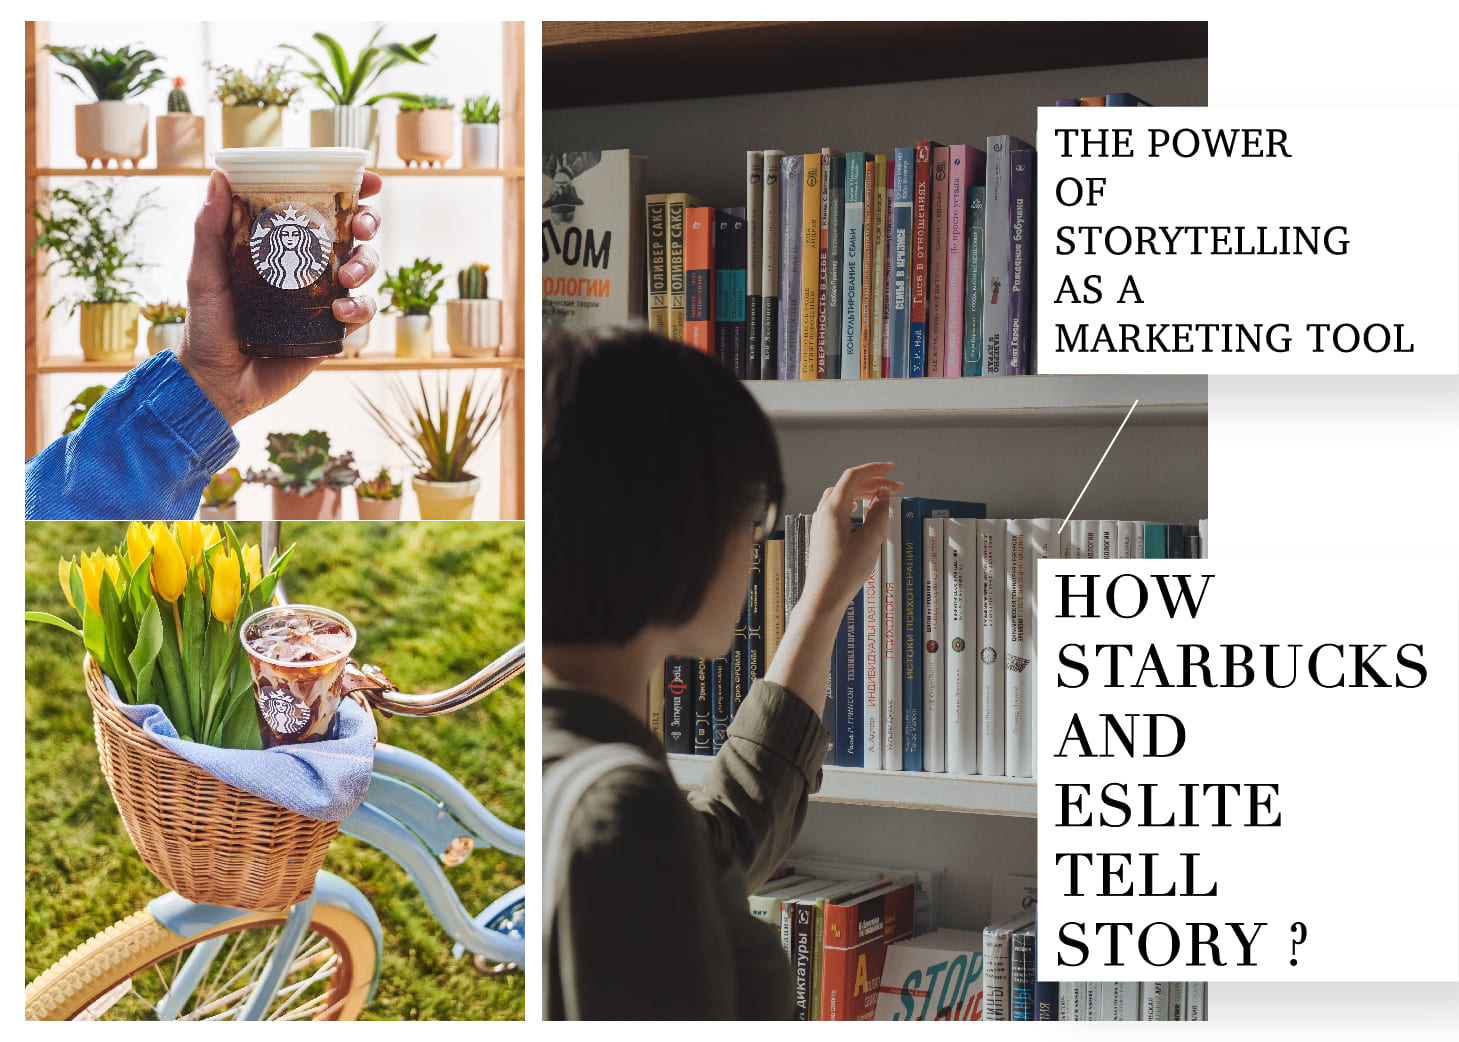 【The Power of Storytelling as a Marketing Tool: How Starbucks and eslite tell story?行銷人】用「故事行銷」幫你的TA貼標籤!連鎖咖啡星巴克、誠品書店也用這招